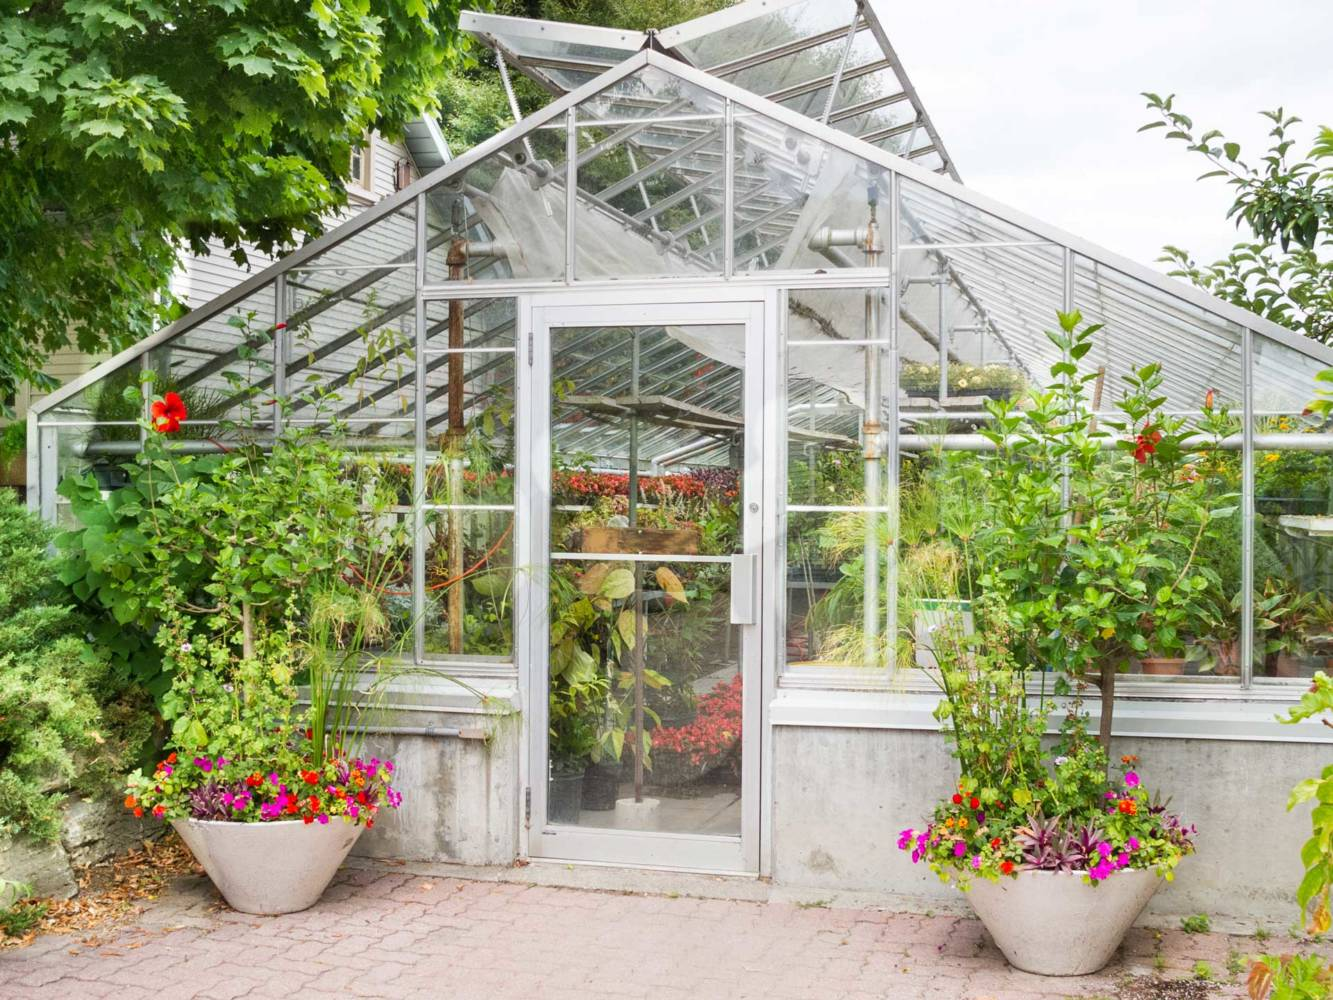 Electrical wiring for greenhouses by Southern Electrical in Leesburg VA